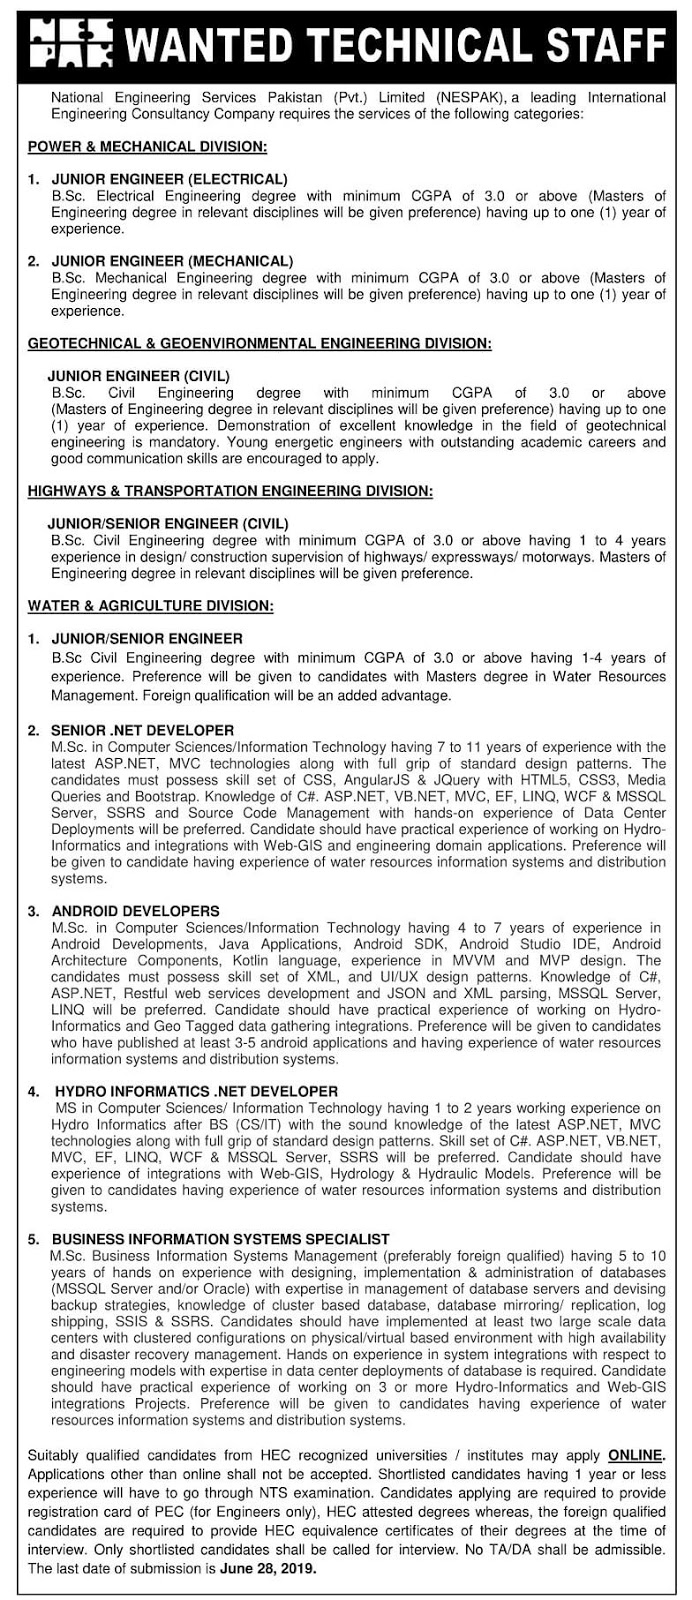 NESPAK Engineering Required Technical Staff Jobs June 2019